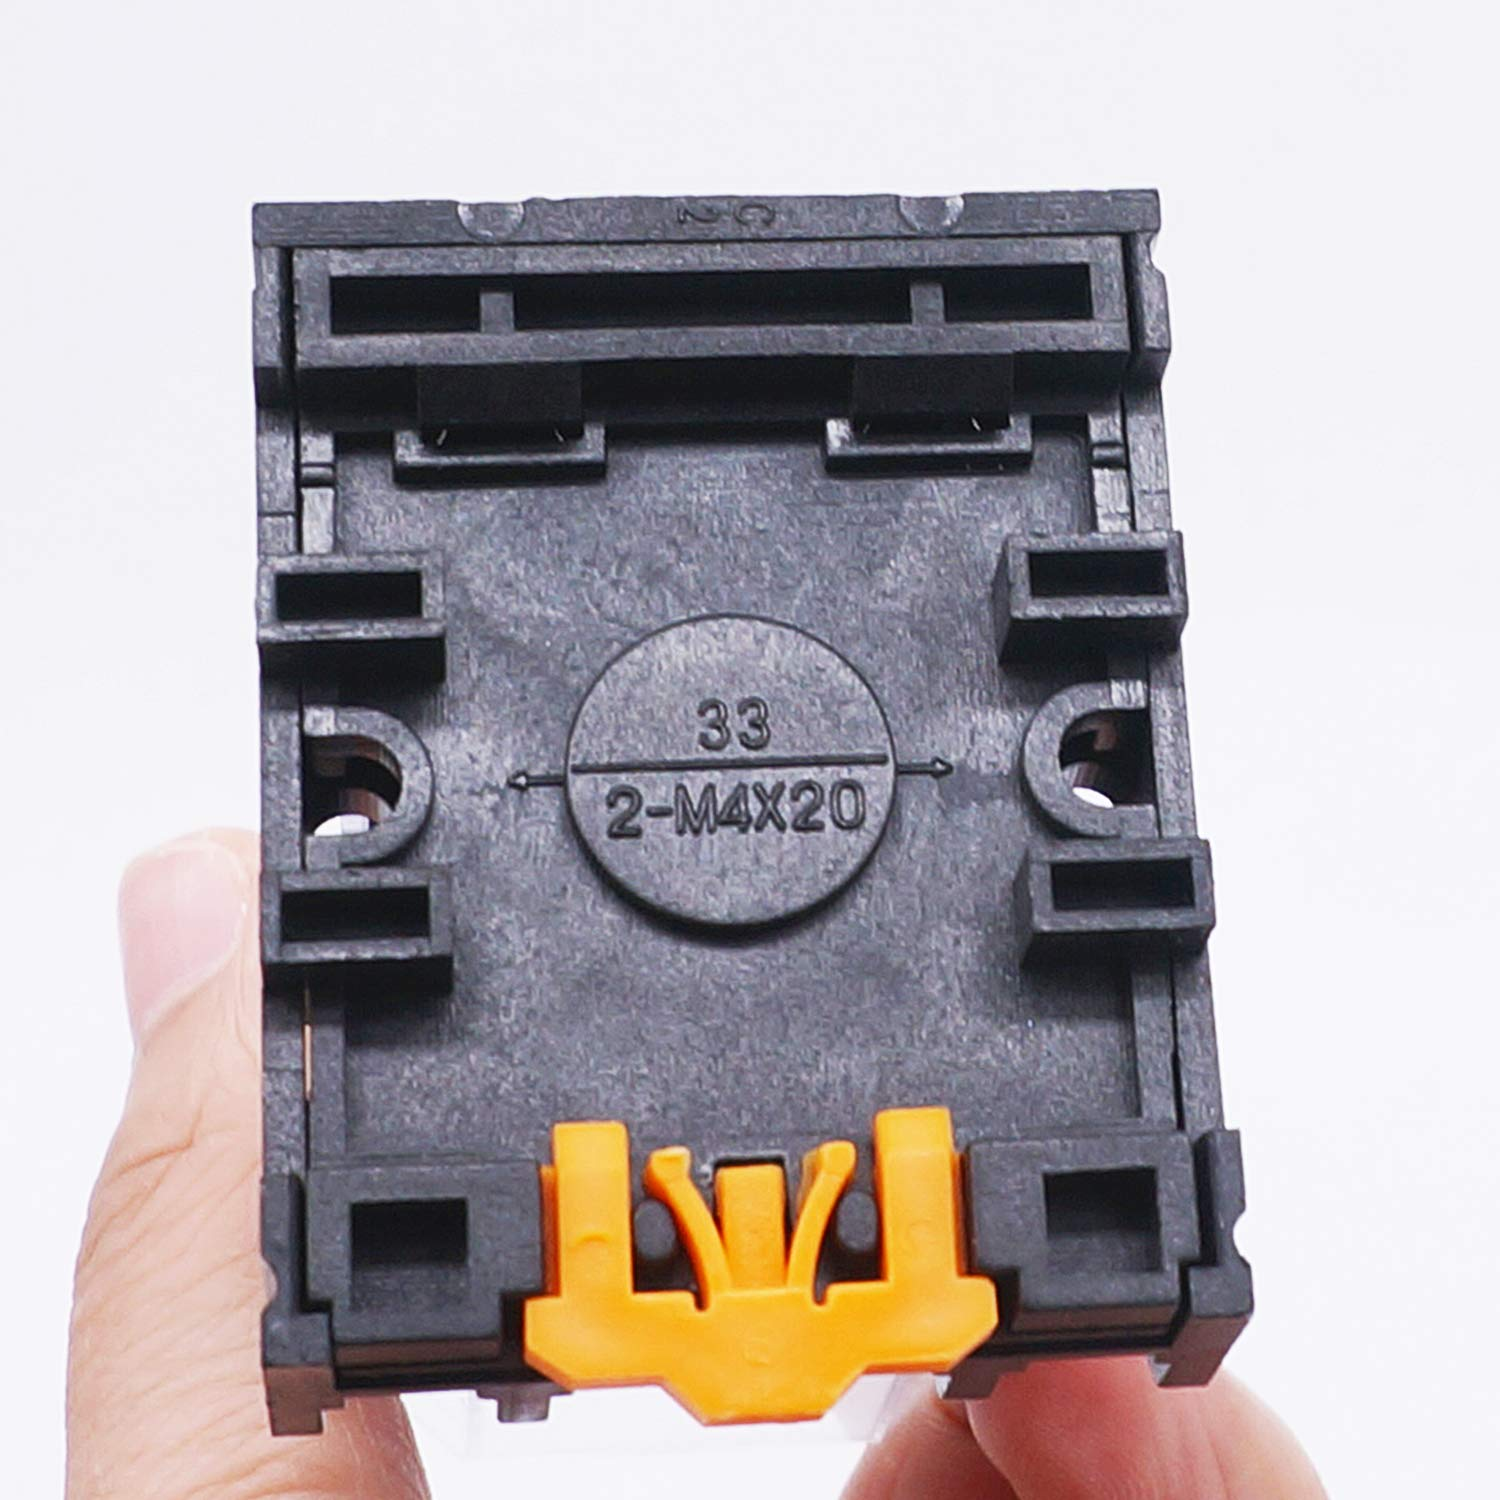 Quality Assurance for 1 Years 8 Pin 2NO 2NC MK2P-I DPDT Power Relay with Plug-in Terminal Socket Base AC 12V AC 12V Coil TWTADE//JTX-2C